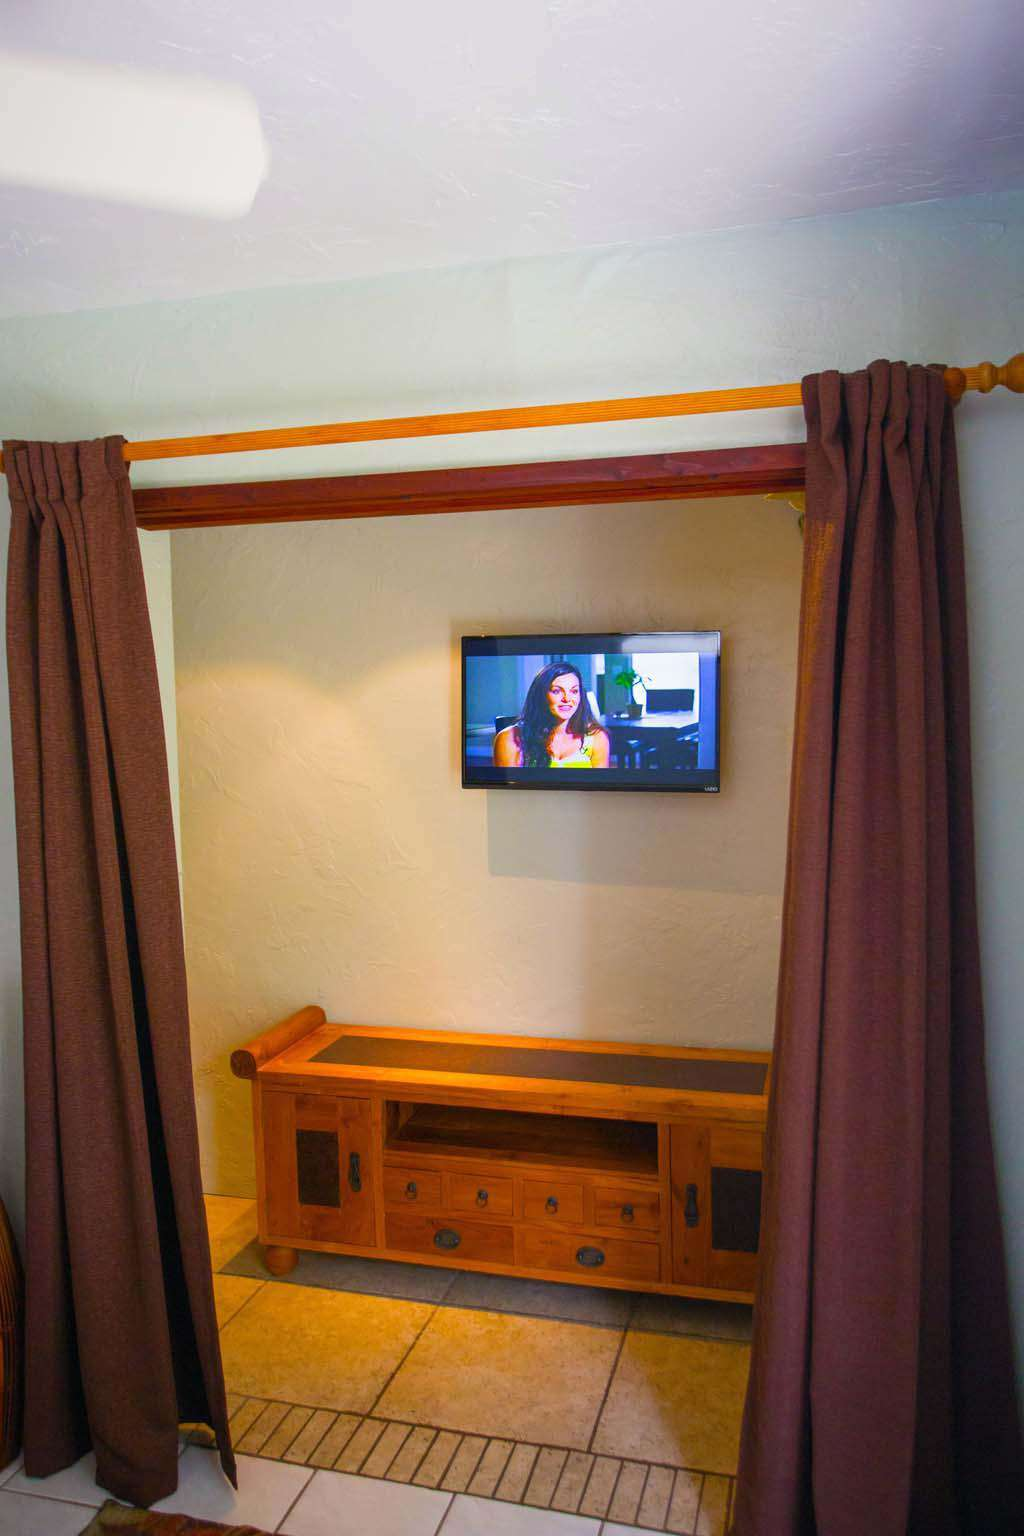 Flat screen smart TV iomn front of king size bed